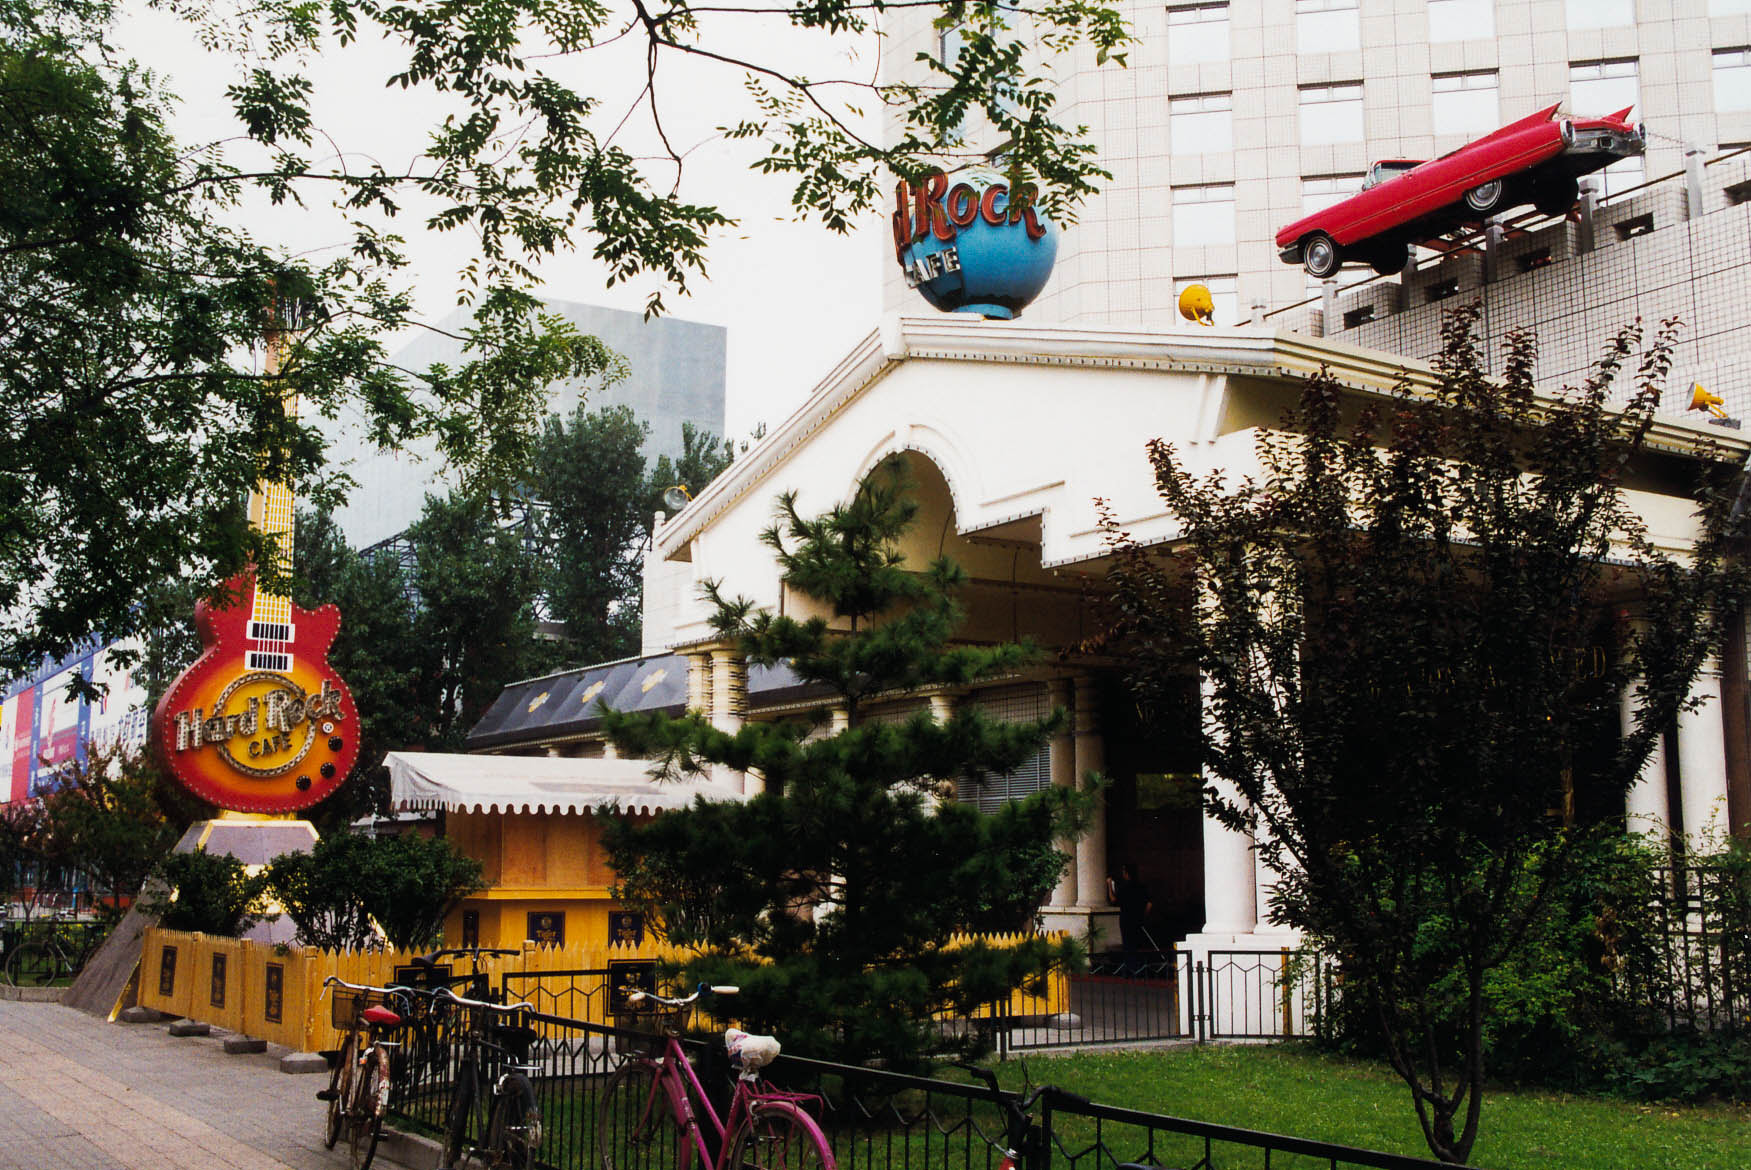 Photograph Hardrock Cafe Beijing anno 1998 by Arie Boeve on 500px